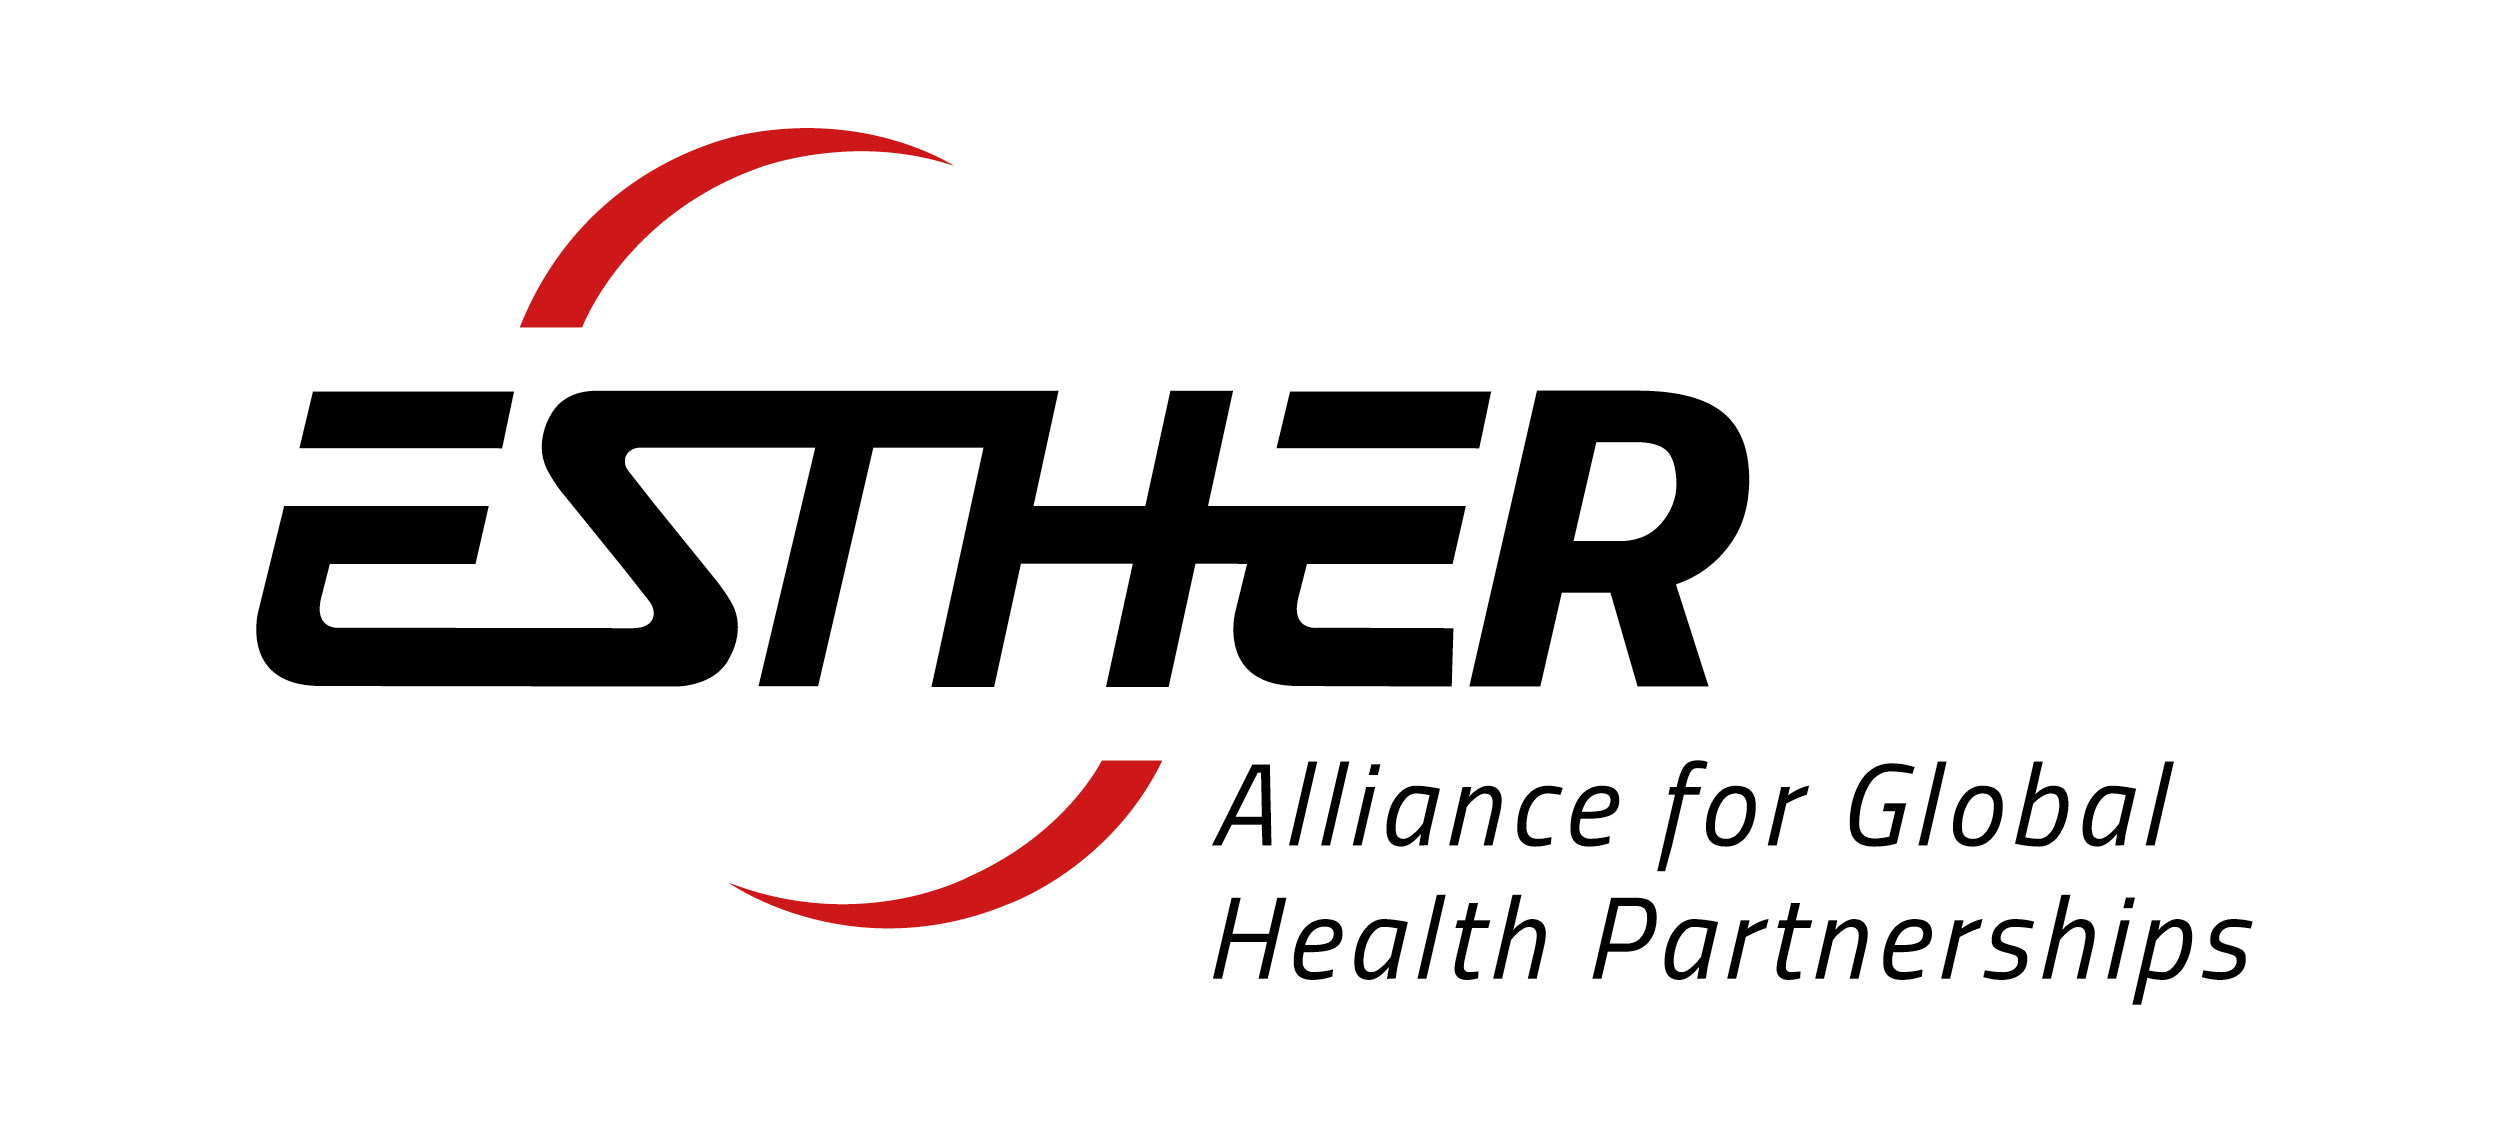 ESTHER_Logo_engl_RGB